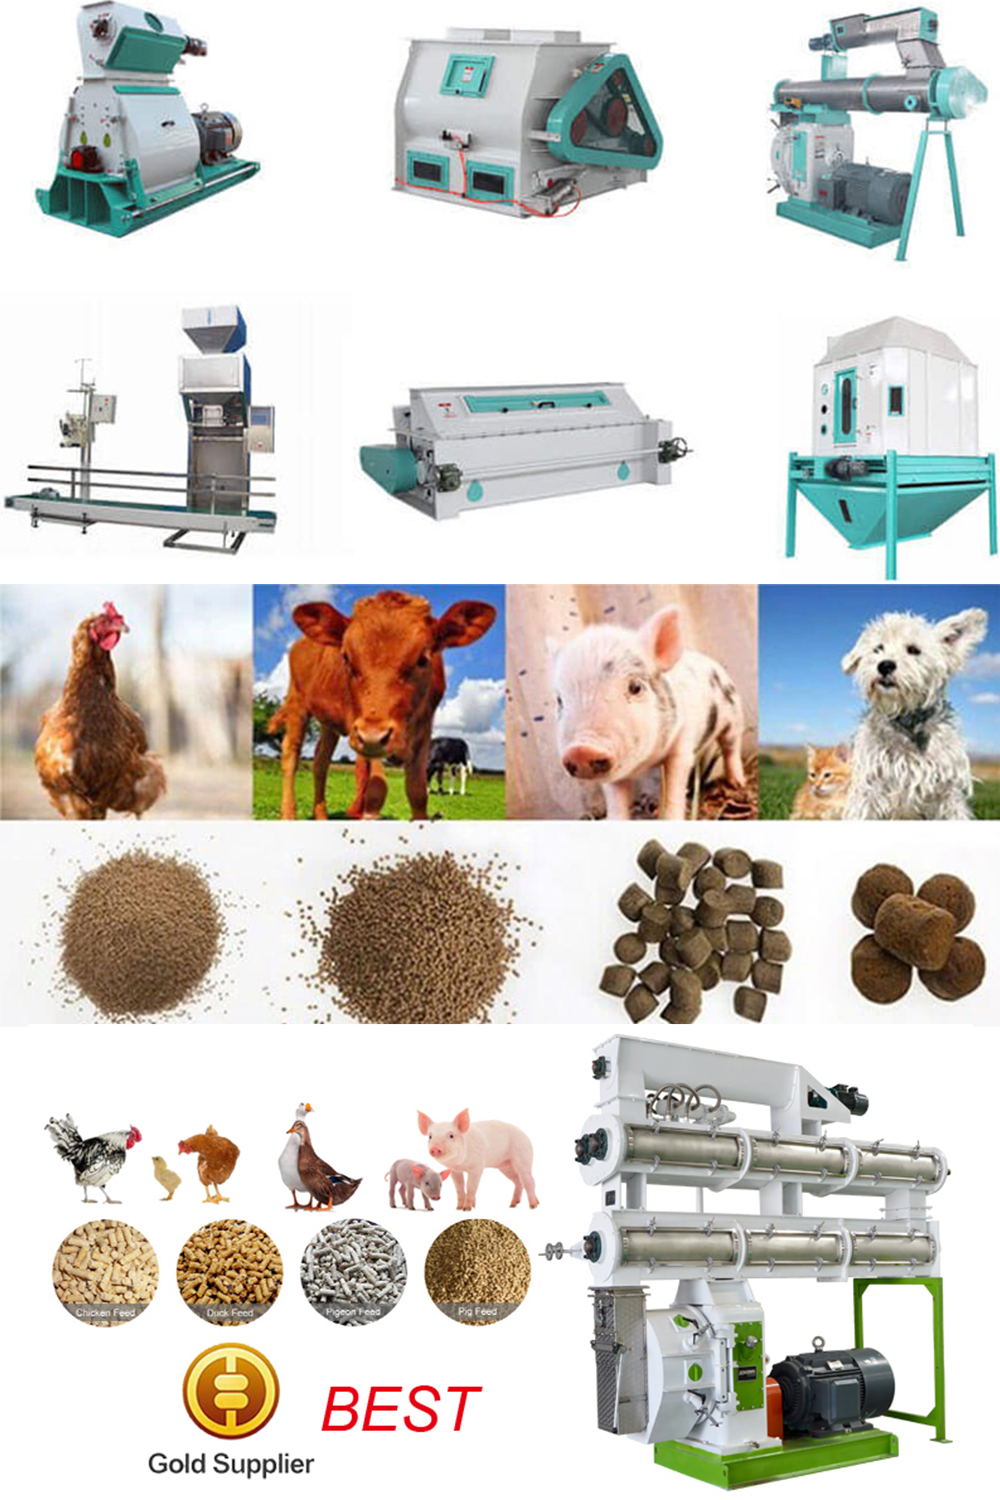 Feed Pellet Mill Machine Making Animal Feed Pellets From Wheat Straw